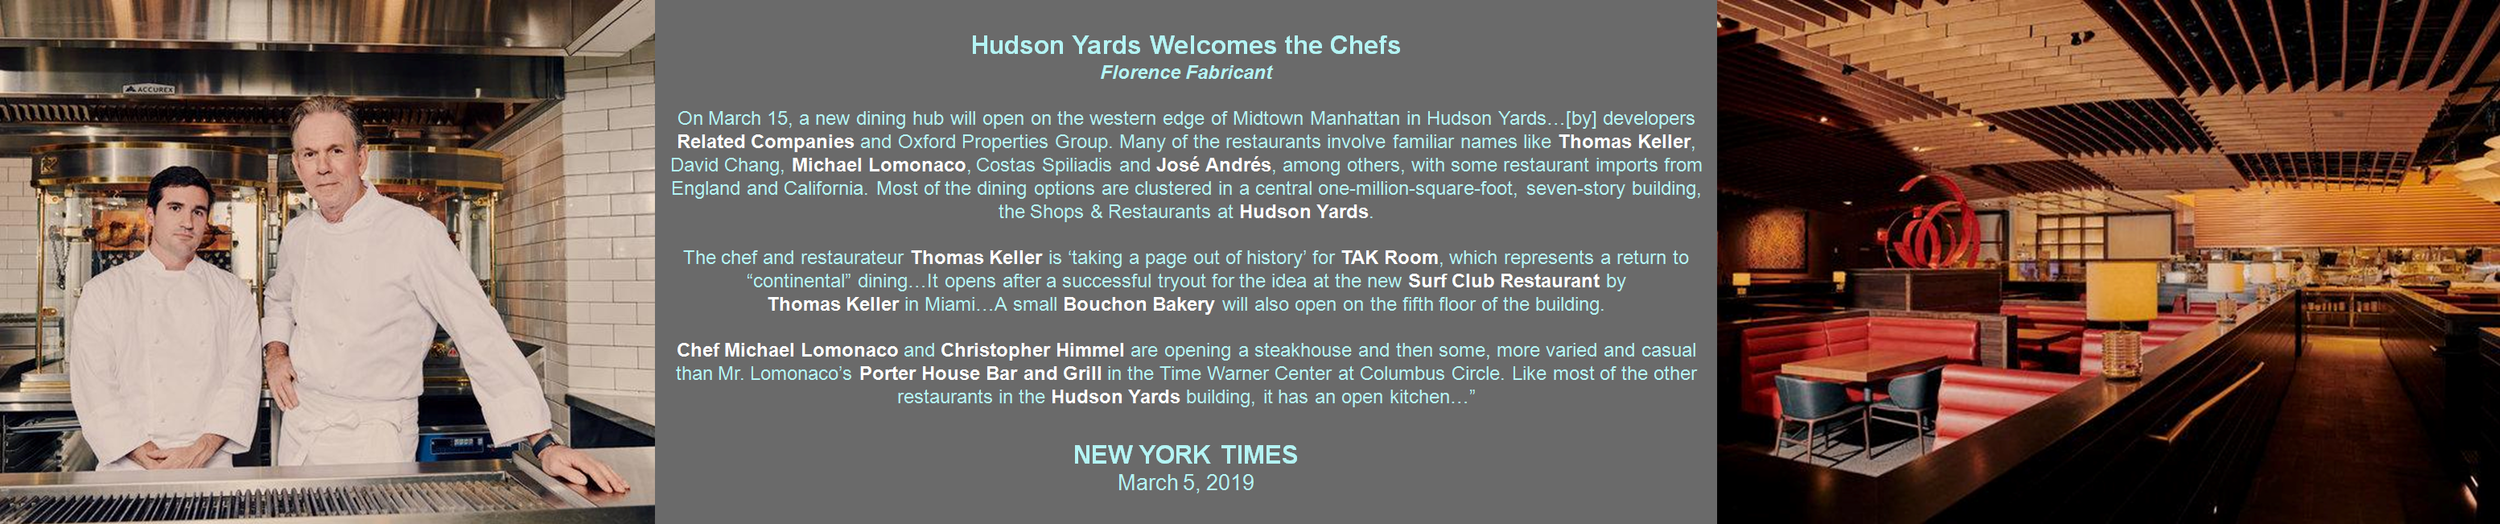 New York Times March 5 2019 Hudson Yards 2.png